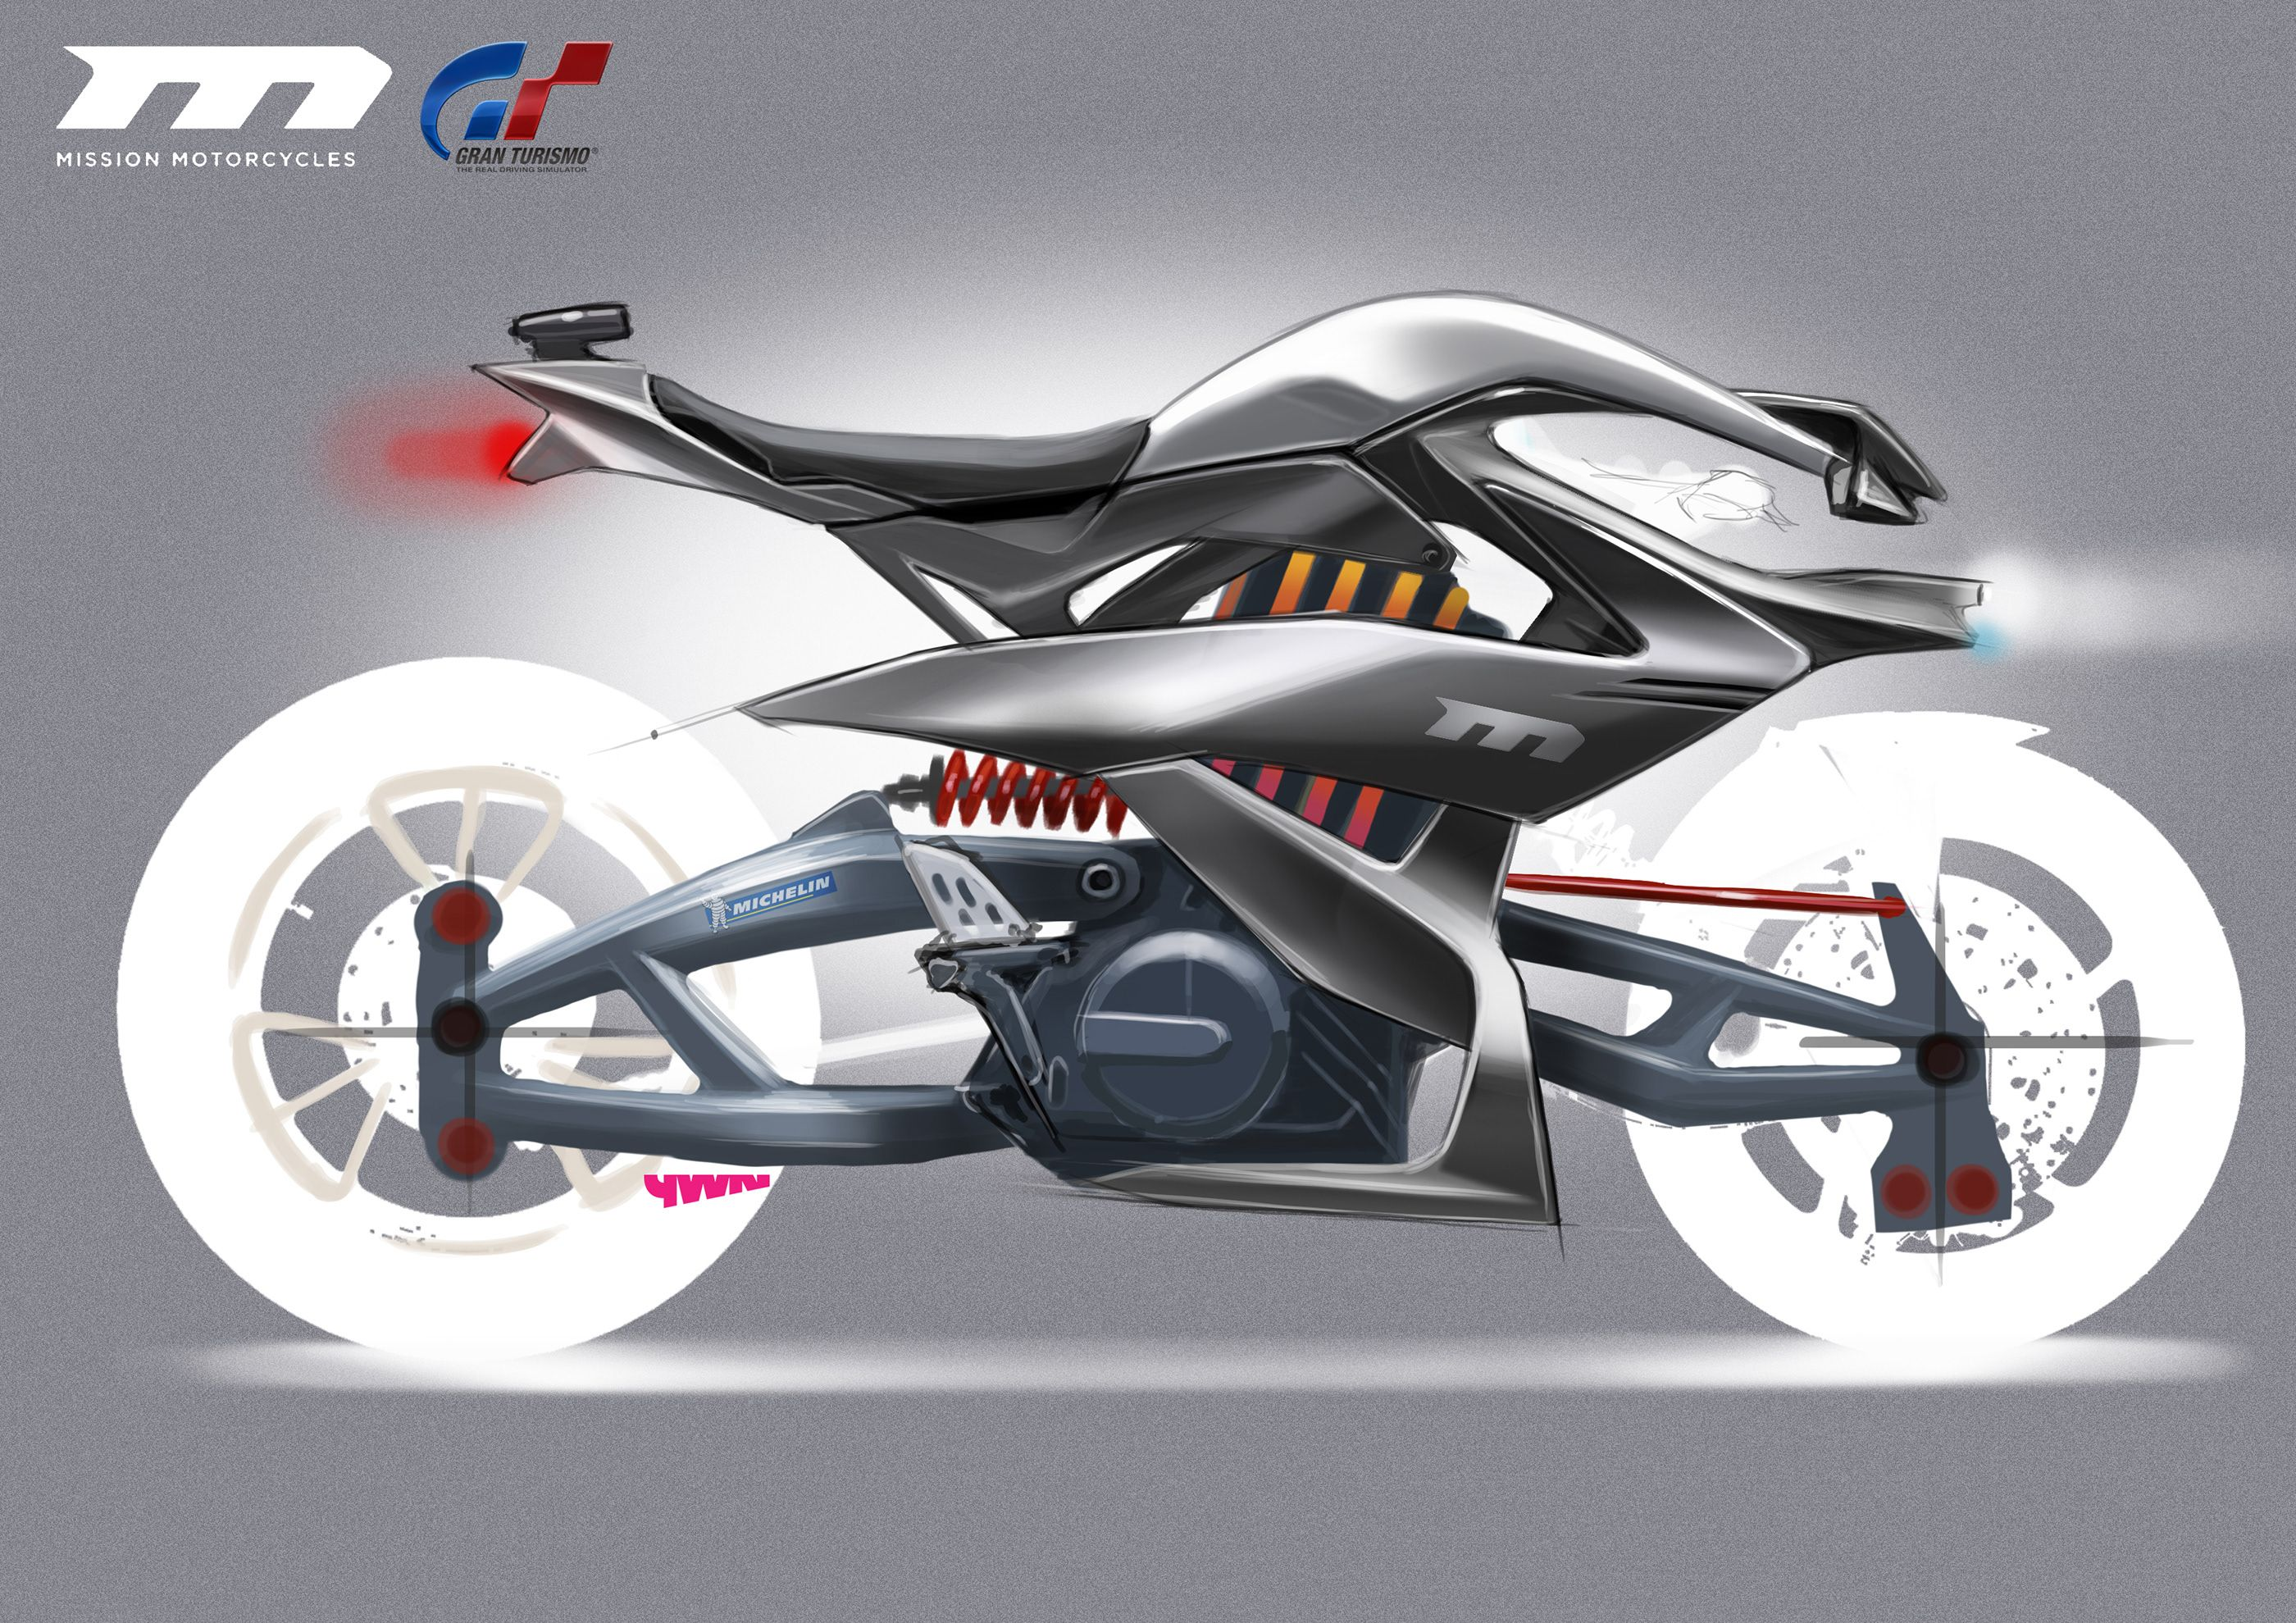 Pin By Peter Terceira On Moto Design Concepts In 2020 Concept